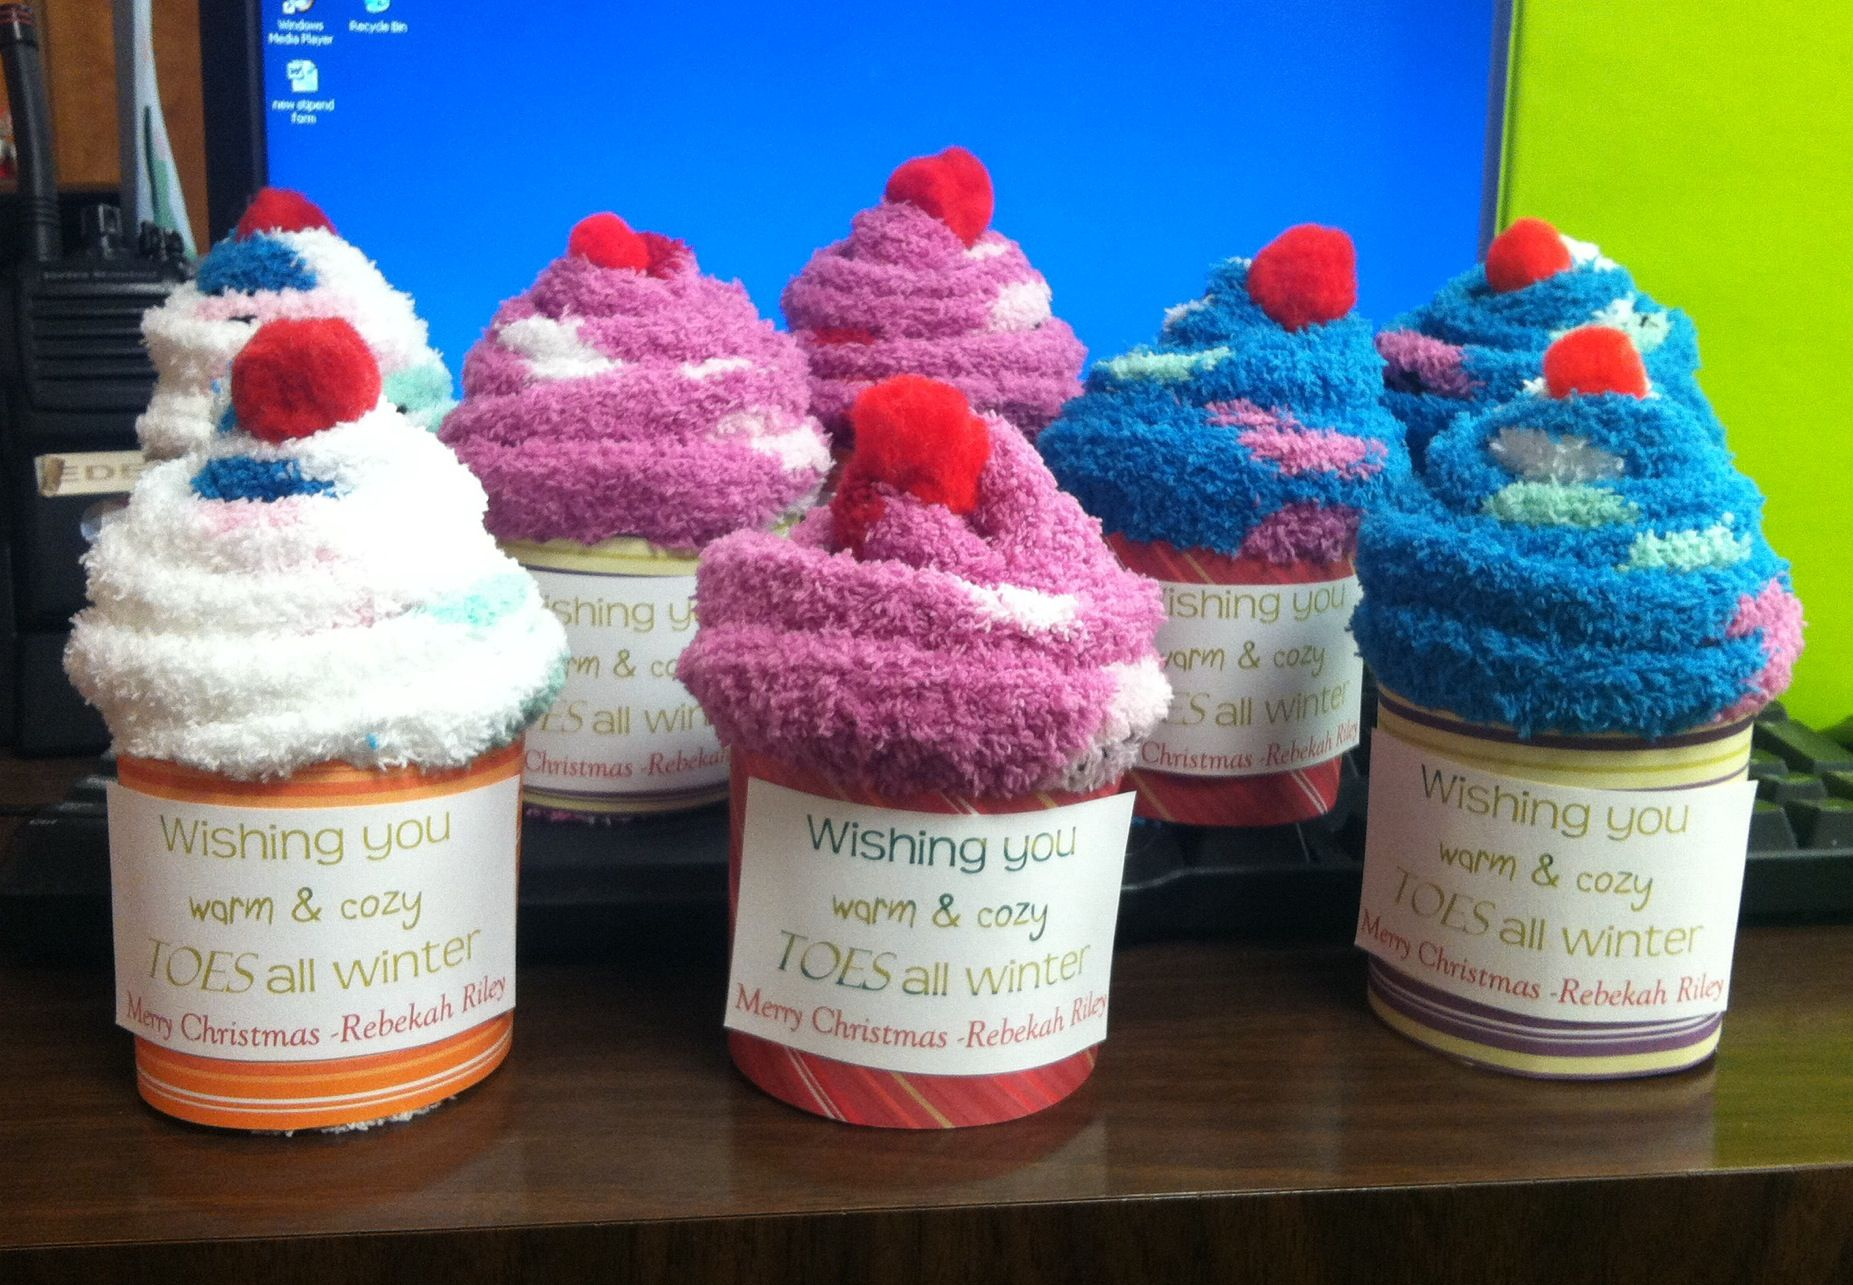 Wishing you warm and fuzzy mistle-toes this Christmas :-) They are fuzzy  socks rolled up to look like cupcakes that I made as fun Christmas gifts.